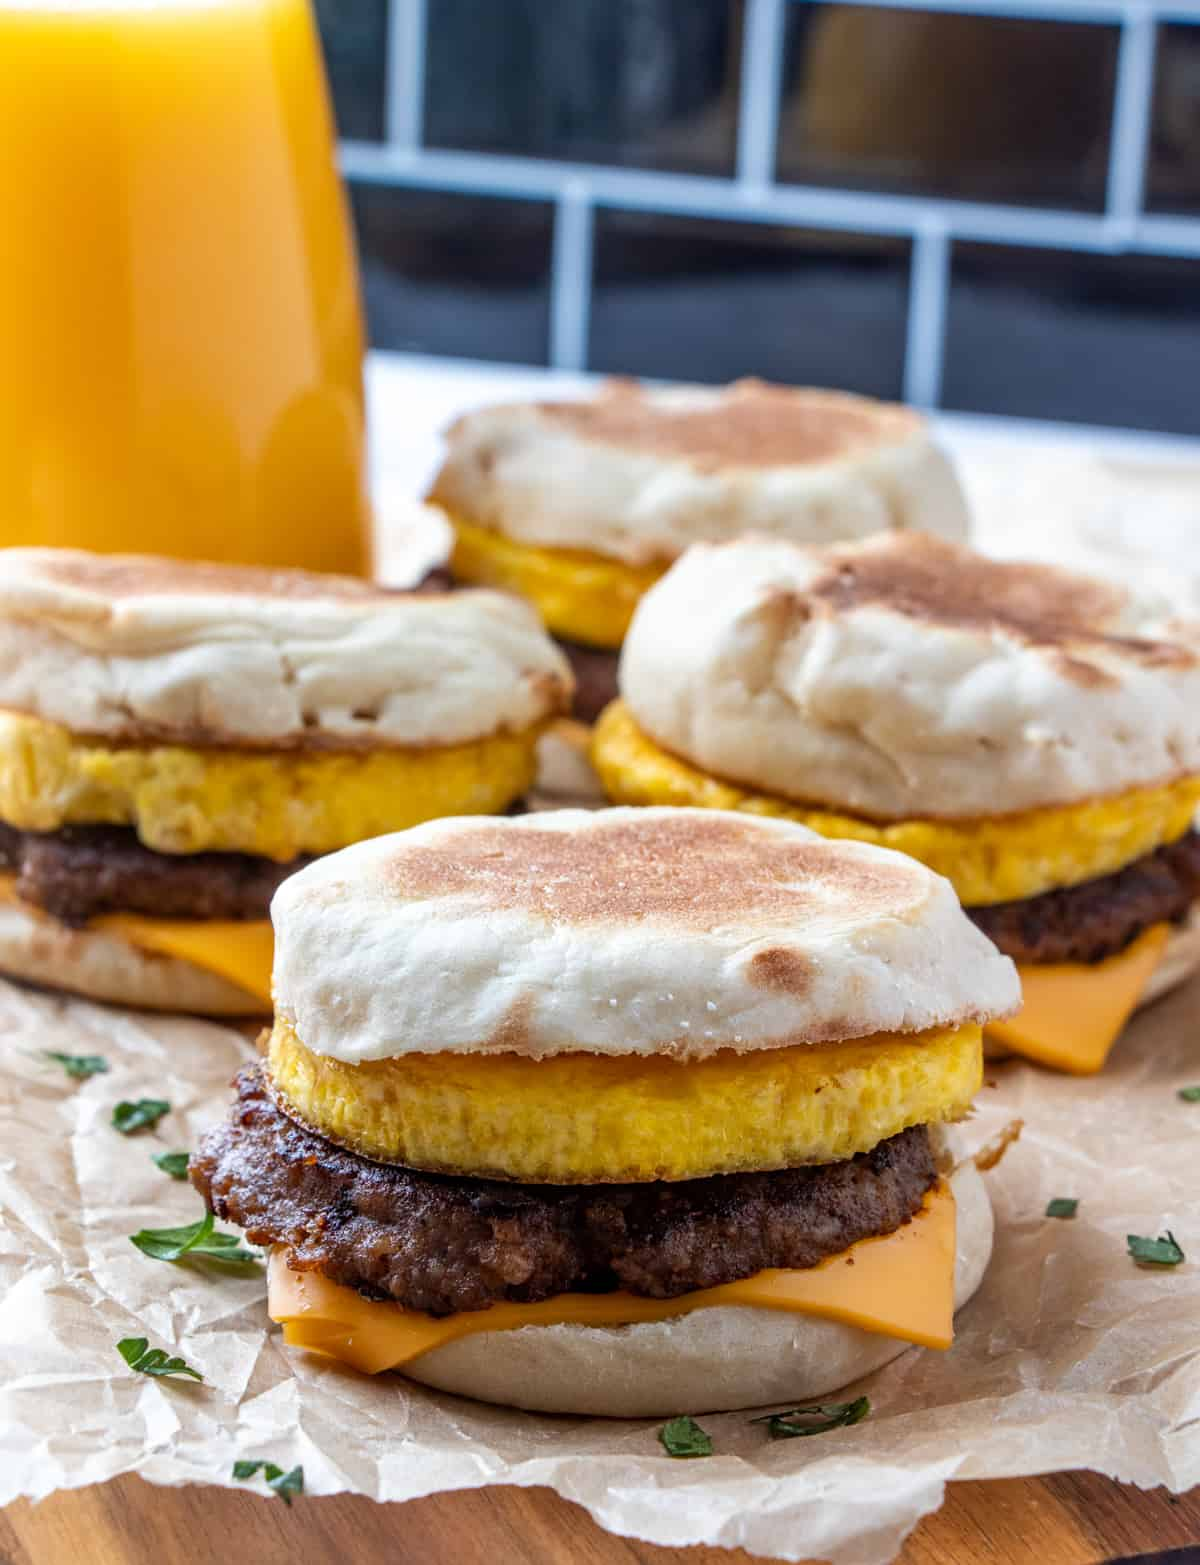 Four sandwiches on parchment paper with orange juice in background